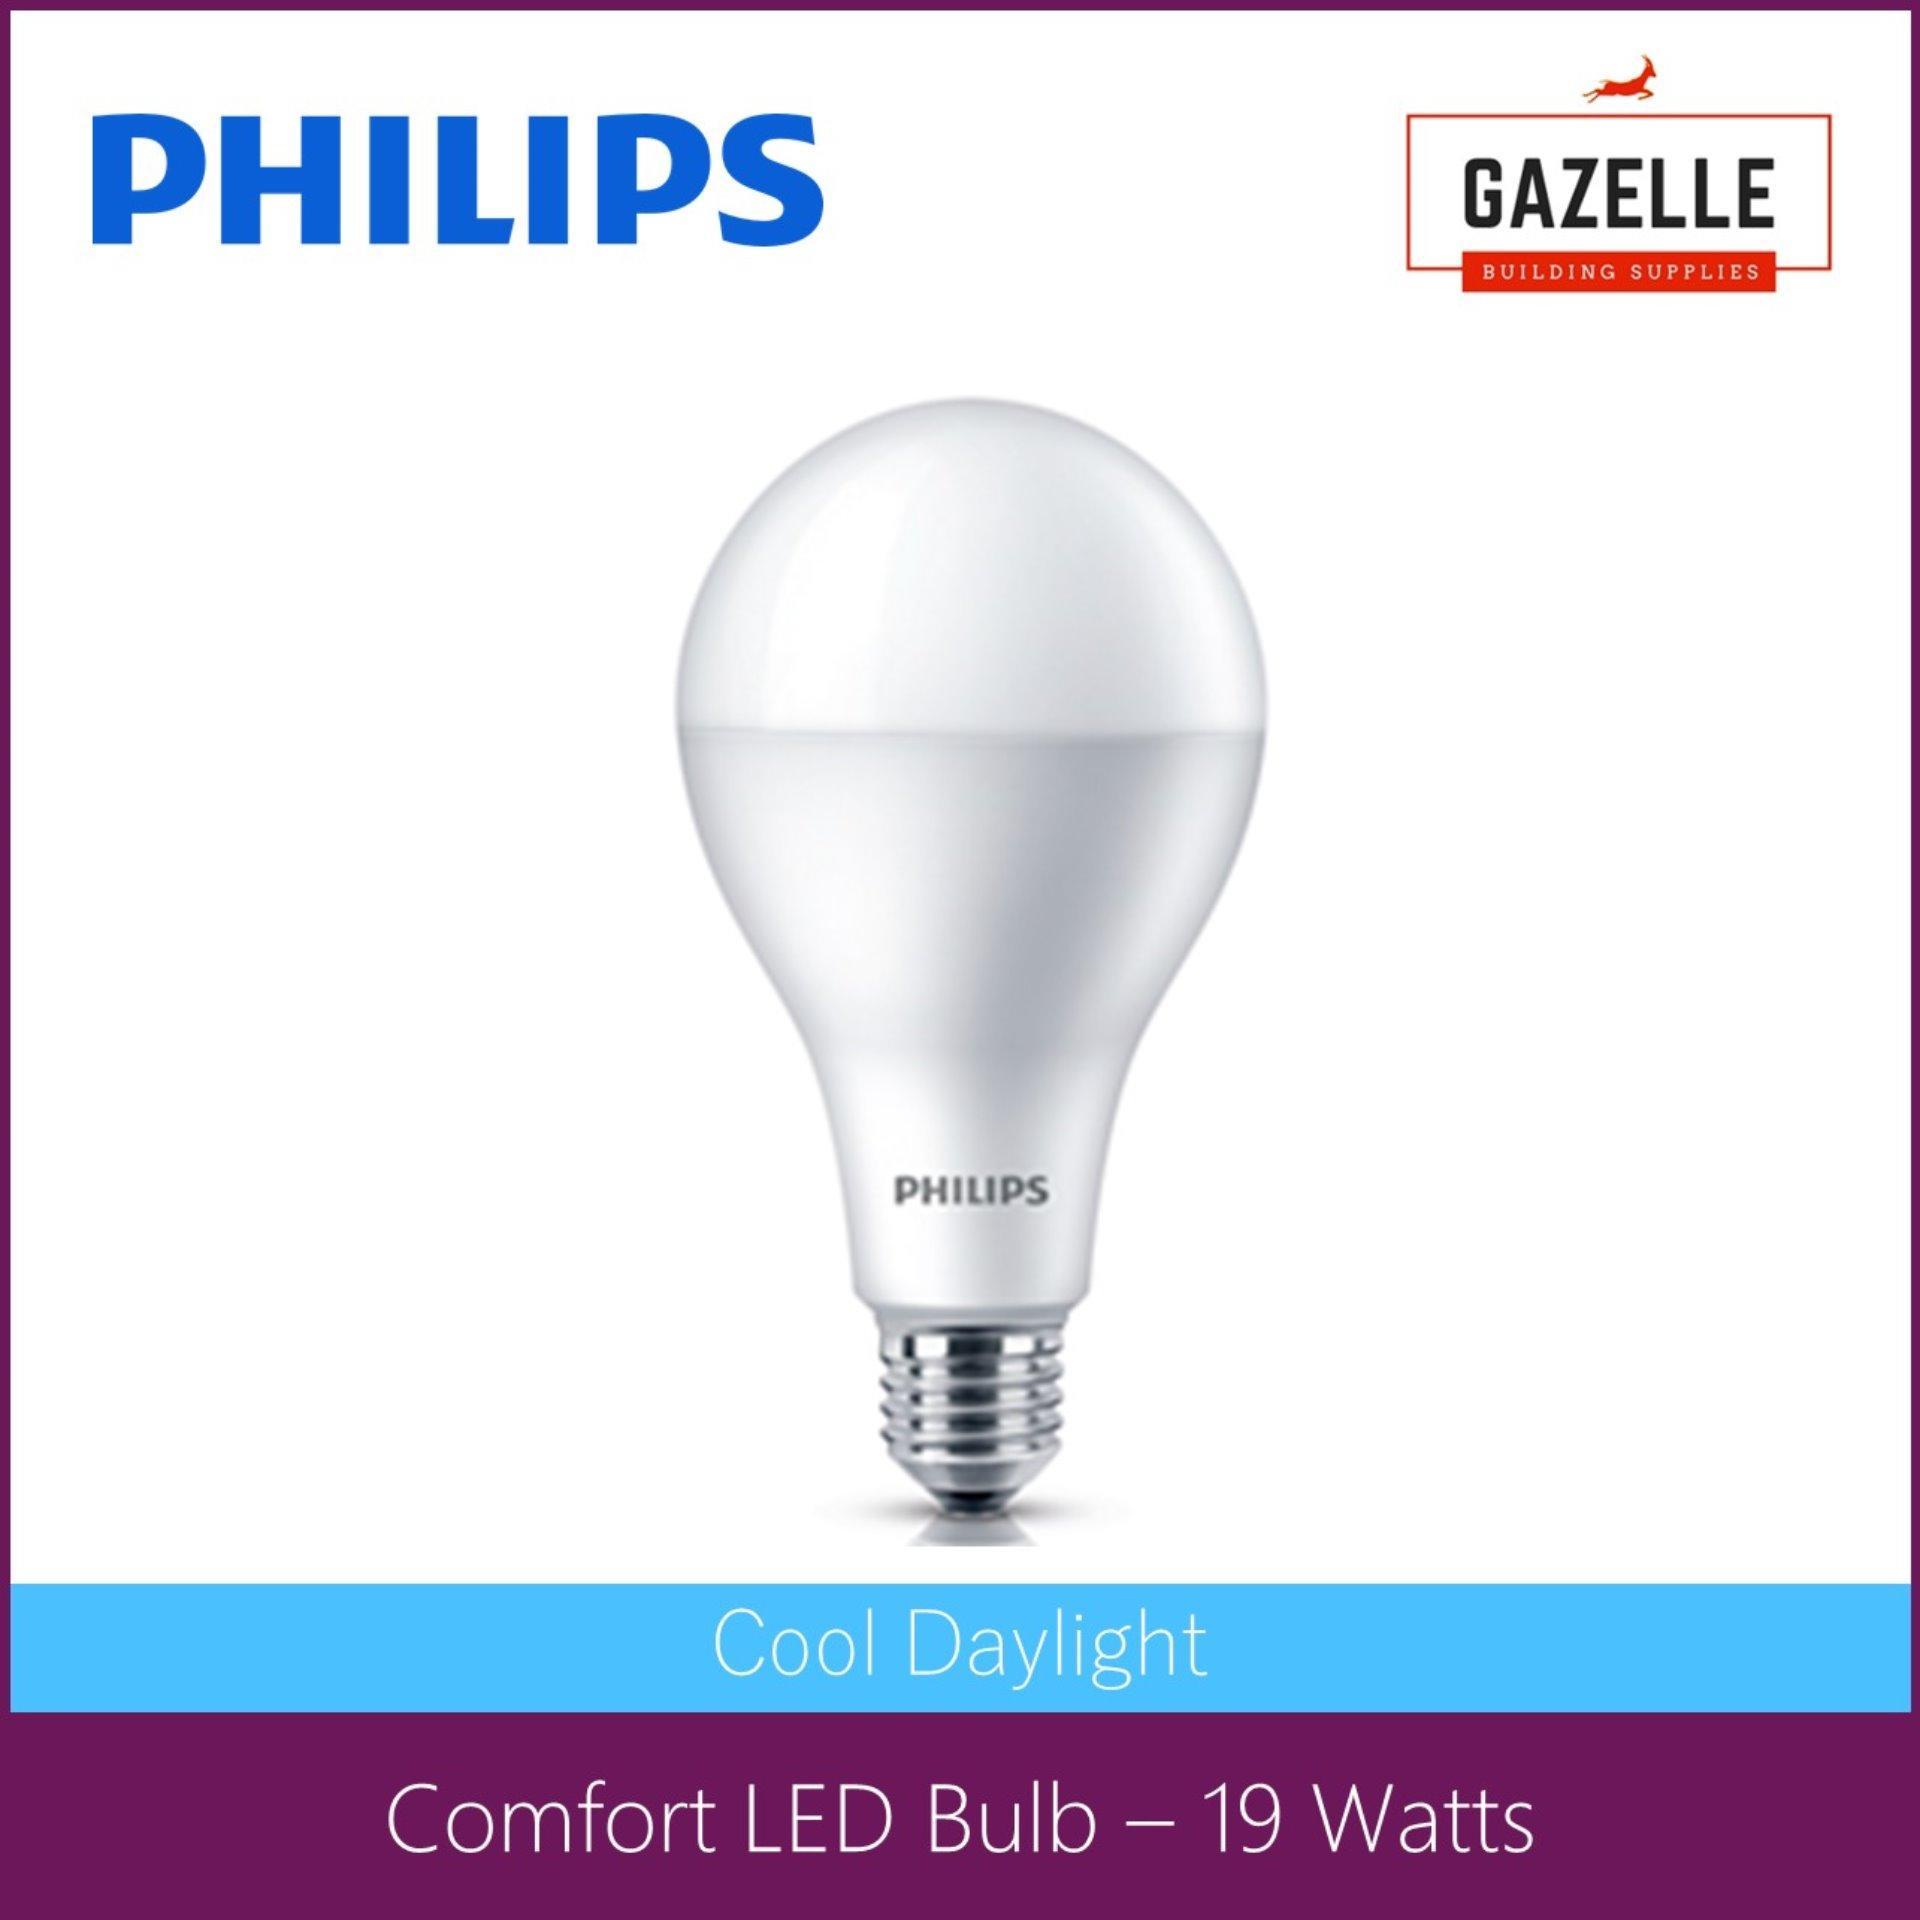 Philips Philippines - Philips Light Bulb for sale - prices & reviews | Lazada